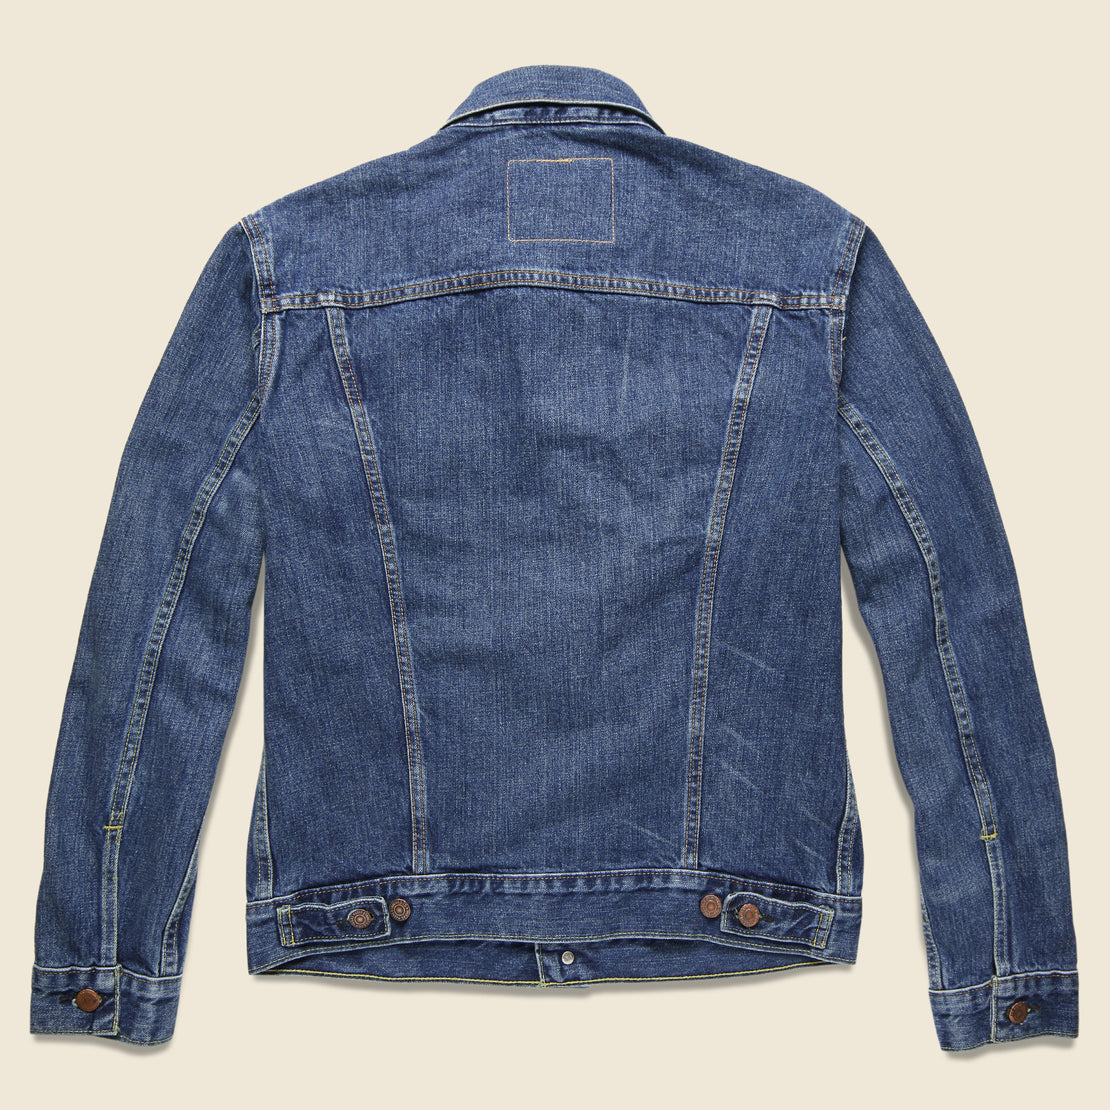 Trucker Jacket - The Shelf